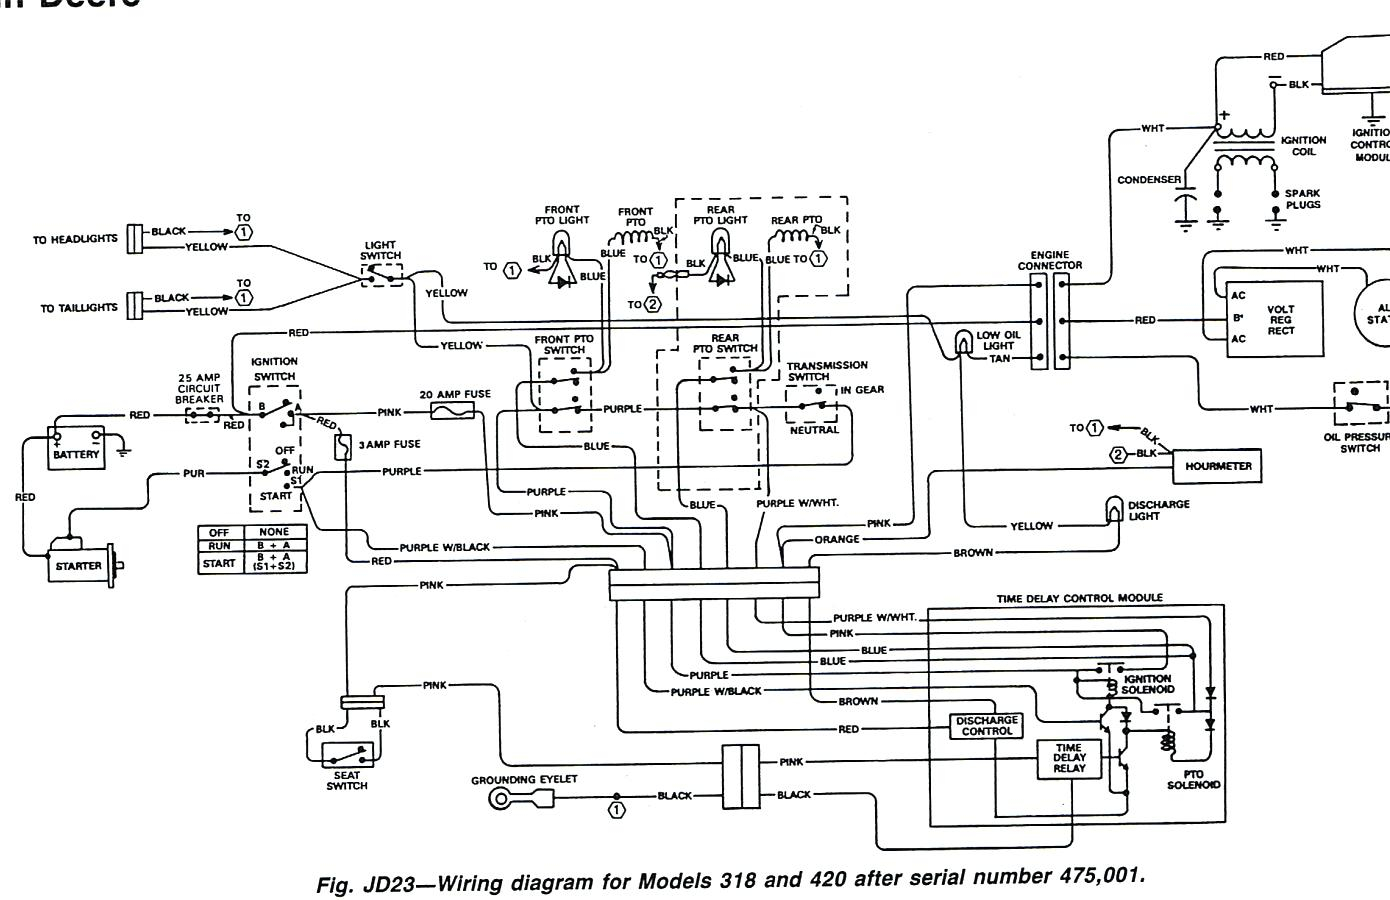 john deere x320 wiring diagram john deere x320 wiring diagram fresh stunning john deere 155c wiring diagram inspiration the 11a jd x540 electrical wiring diagrams schematic diagram